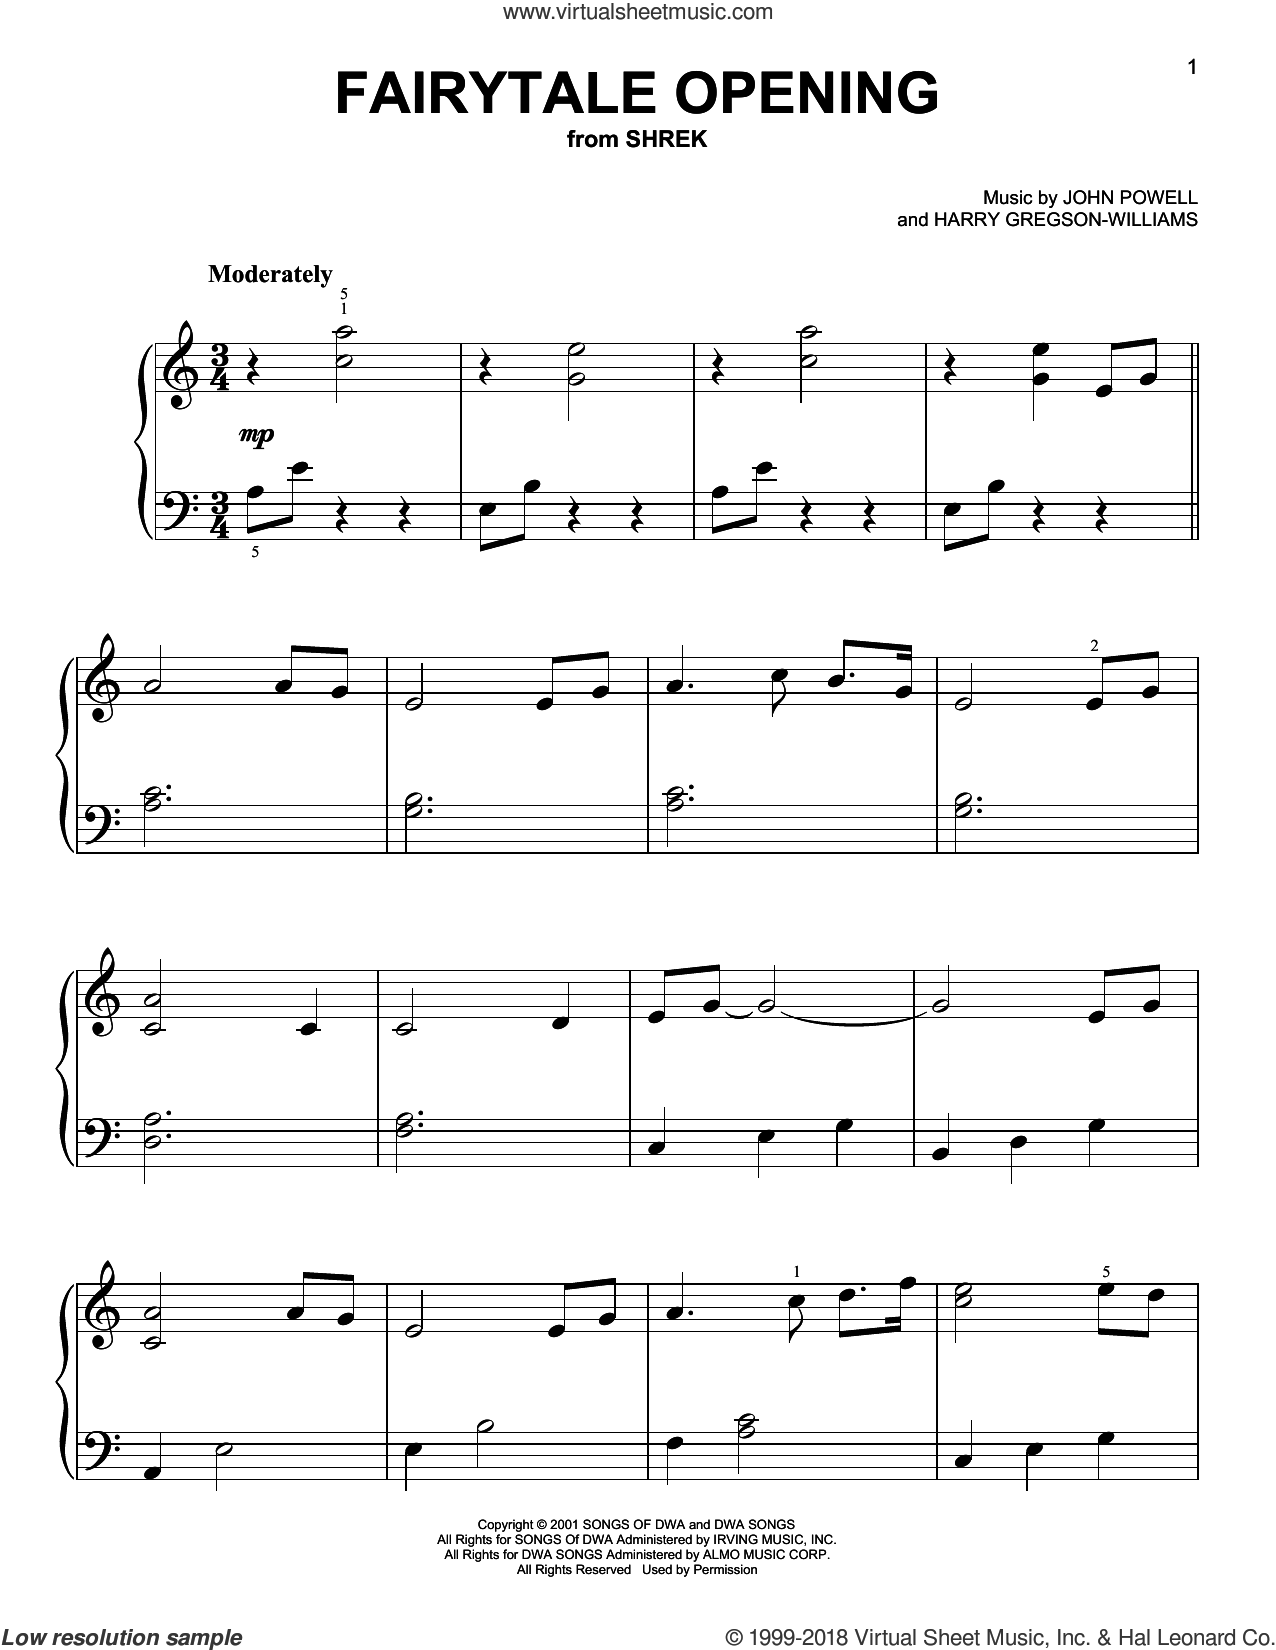 Fairytale Opening sheet music for piano solo by John Powell and Harry Gregson-Williams, easy piano. Score Image Preview.